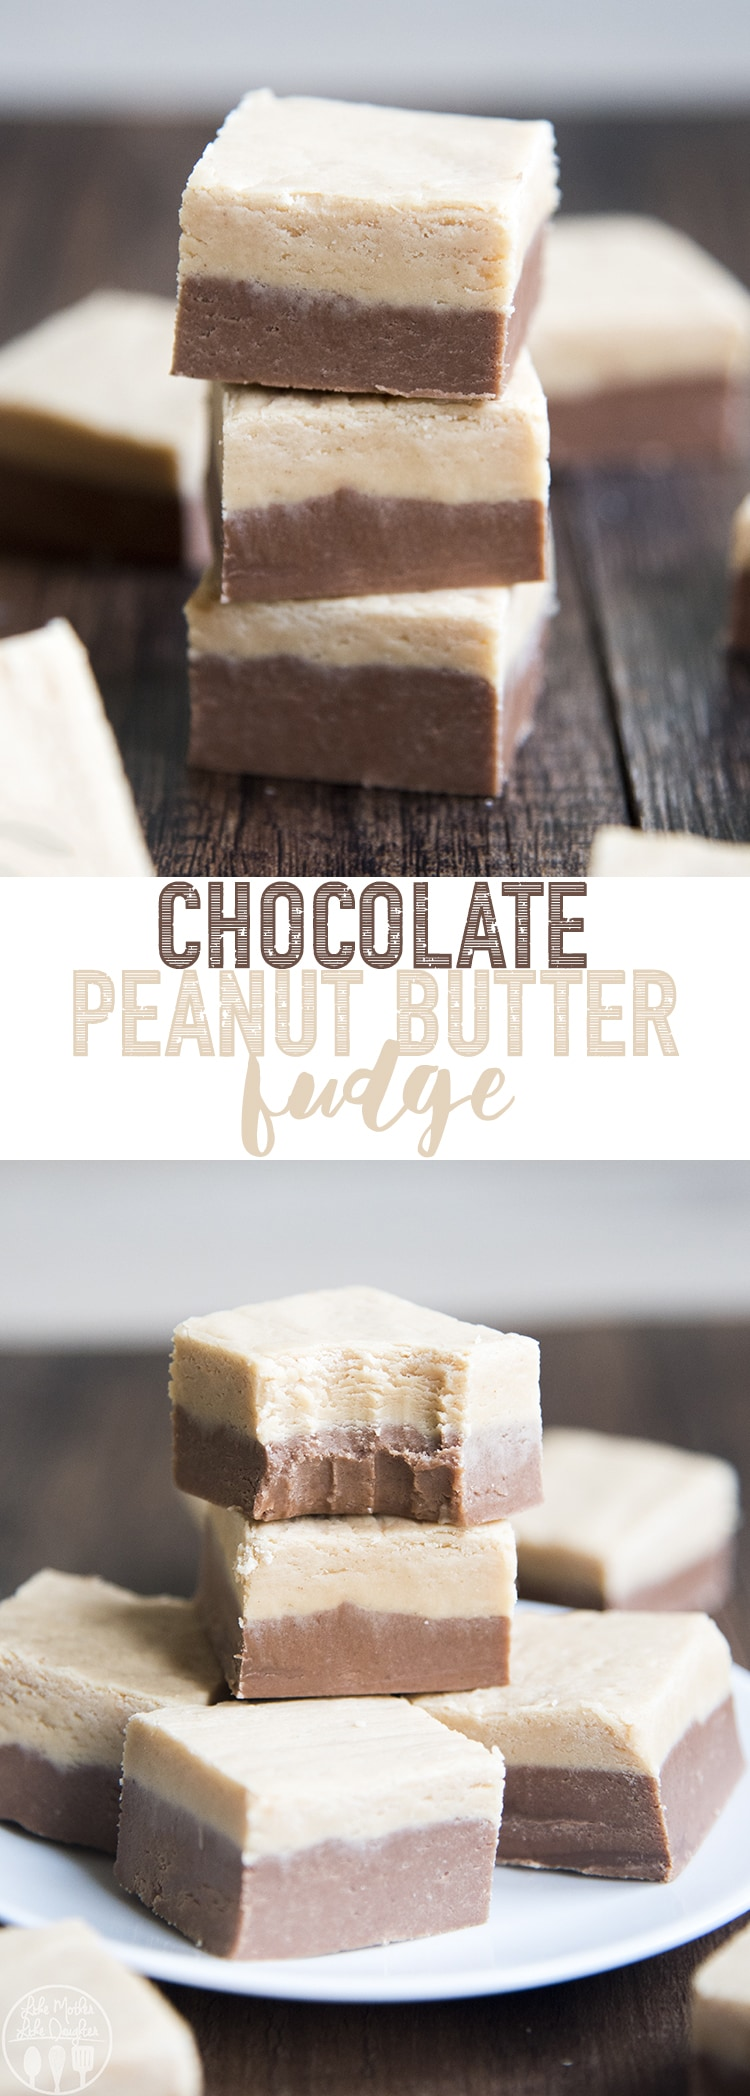 This Chocolate Peanut Butter Fudge is an irresistible creamy and delicious fudge. It's the perfect combination of chocolate fudge and peanut butter fudge, and a delicious treat that everyone will love!